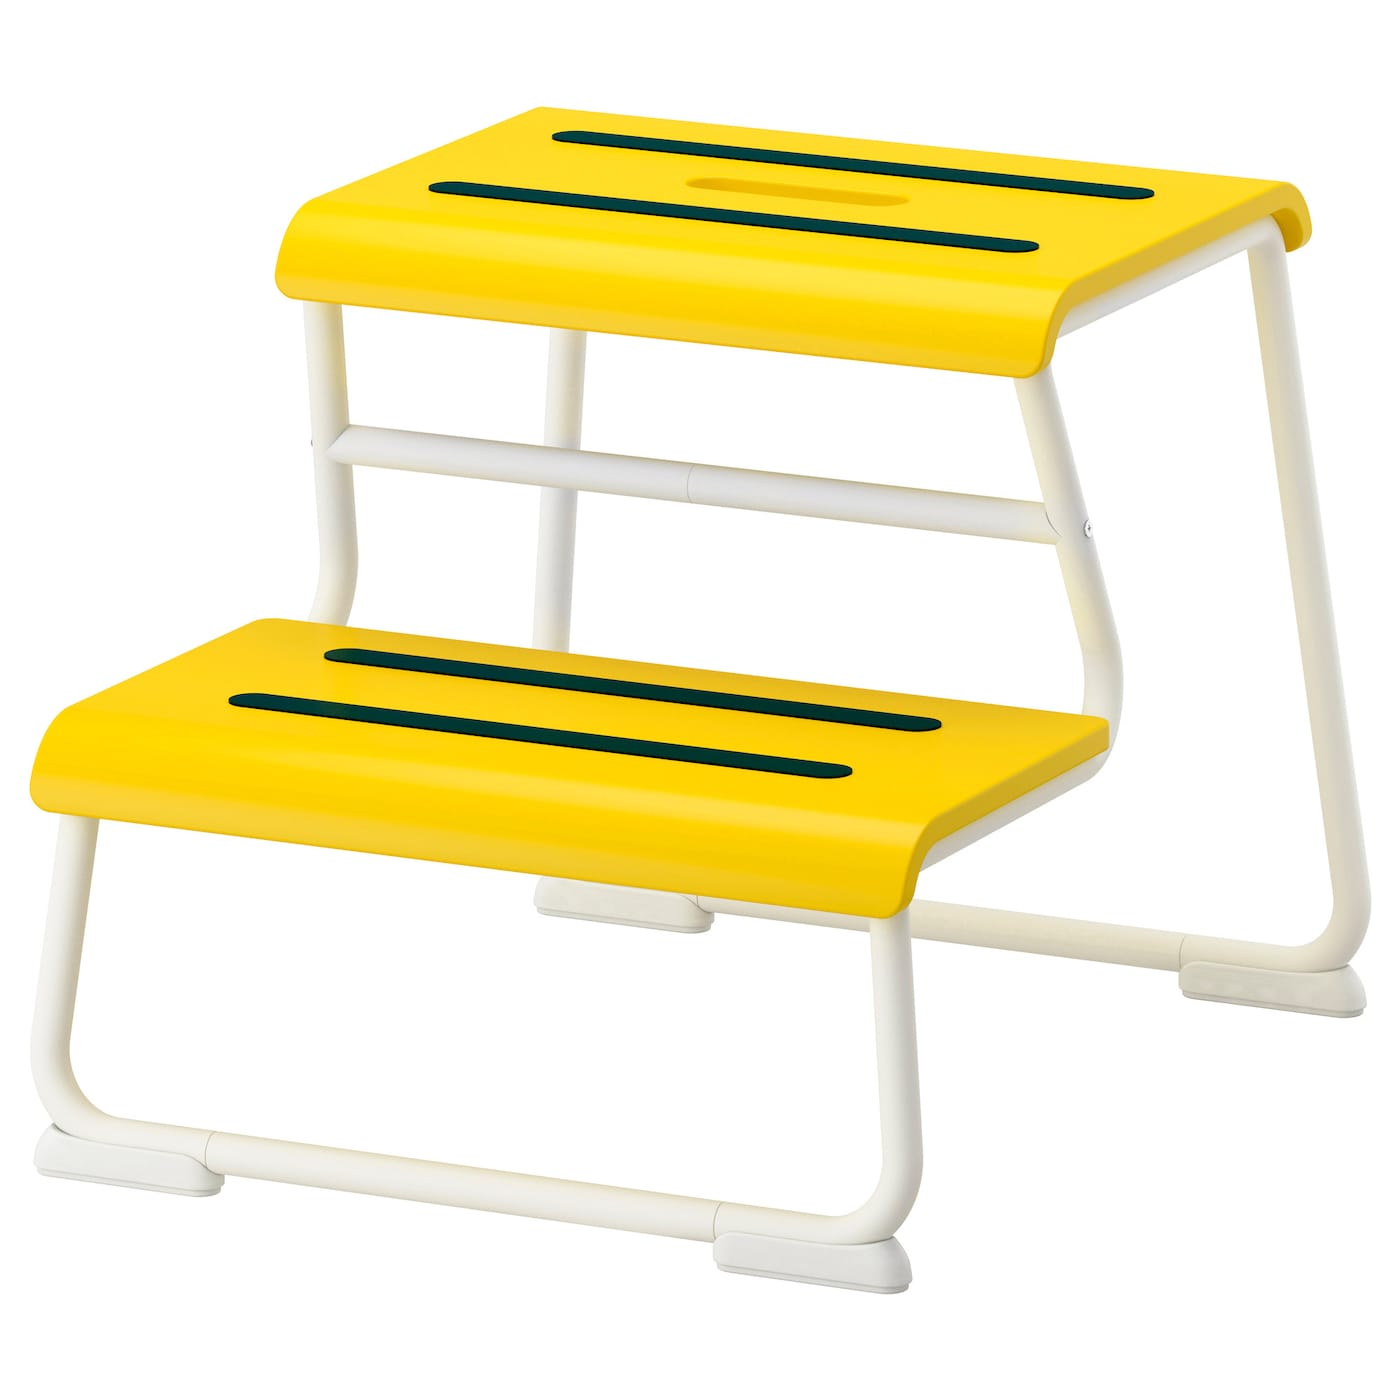 #C7A604 IKEA GLOTTEN Step Stool Anti Slip Cover On Top Reduces The Risk Of  with 2000x2000 px of Most Effective Stools From Ikea 20002000 wallpaper @ avoidforclosure.info